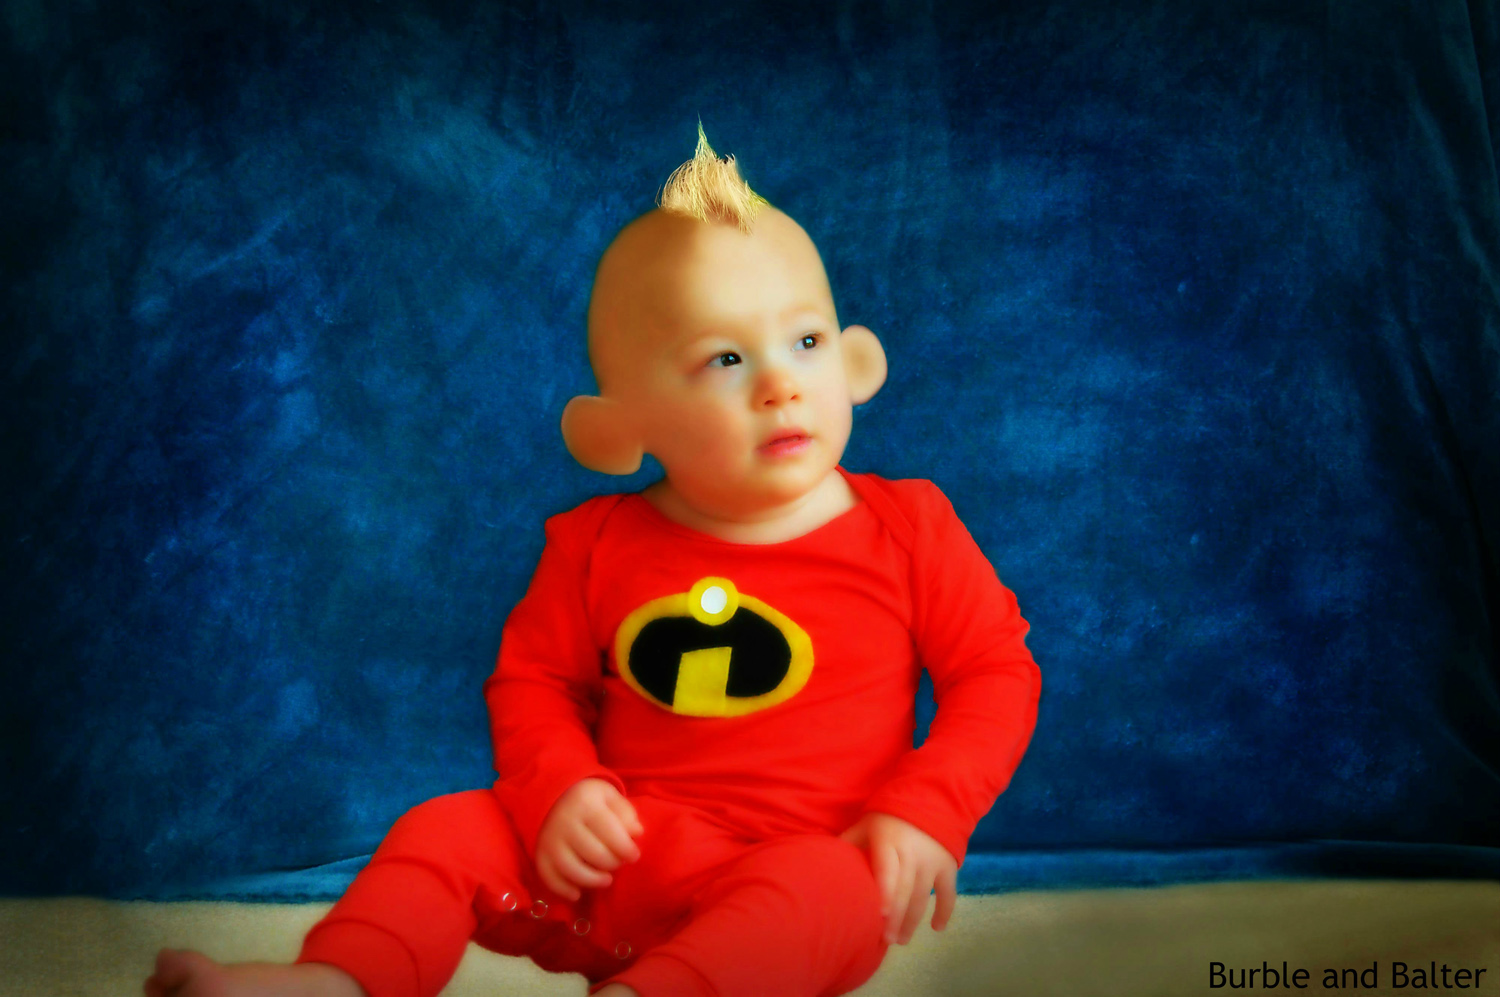 Jack-Jack-Incredibles-Photos-1-Burble-and-Balter.jpg